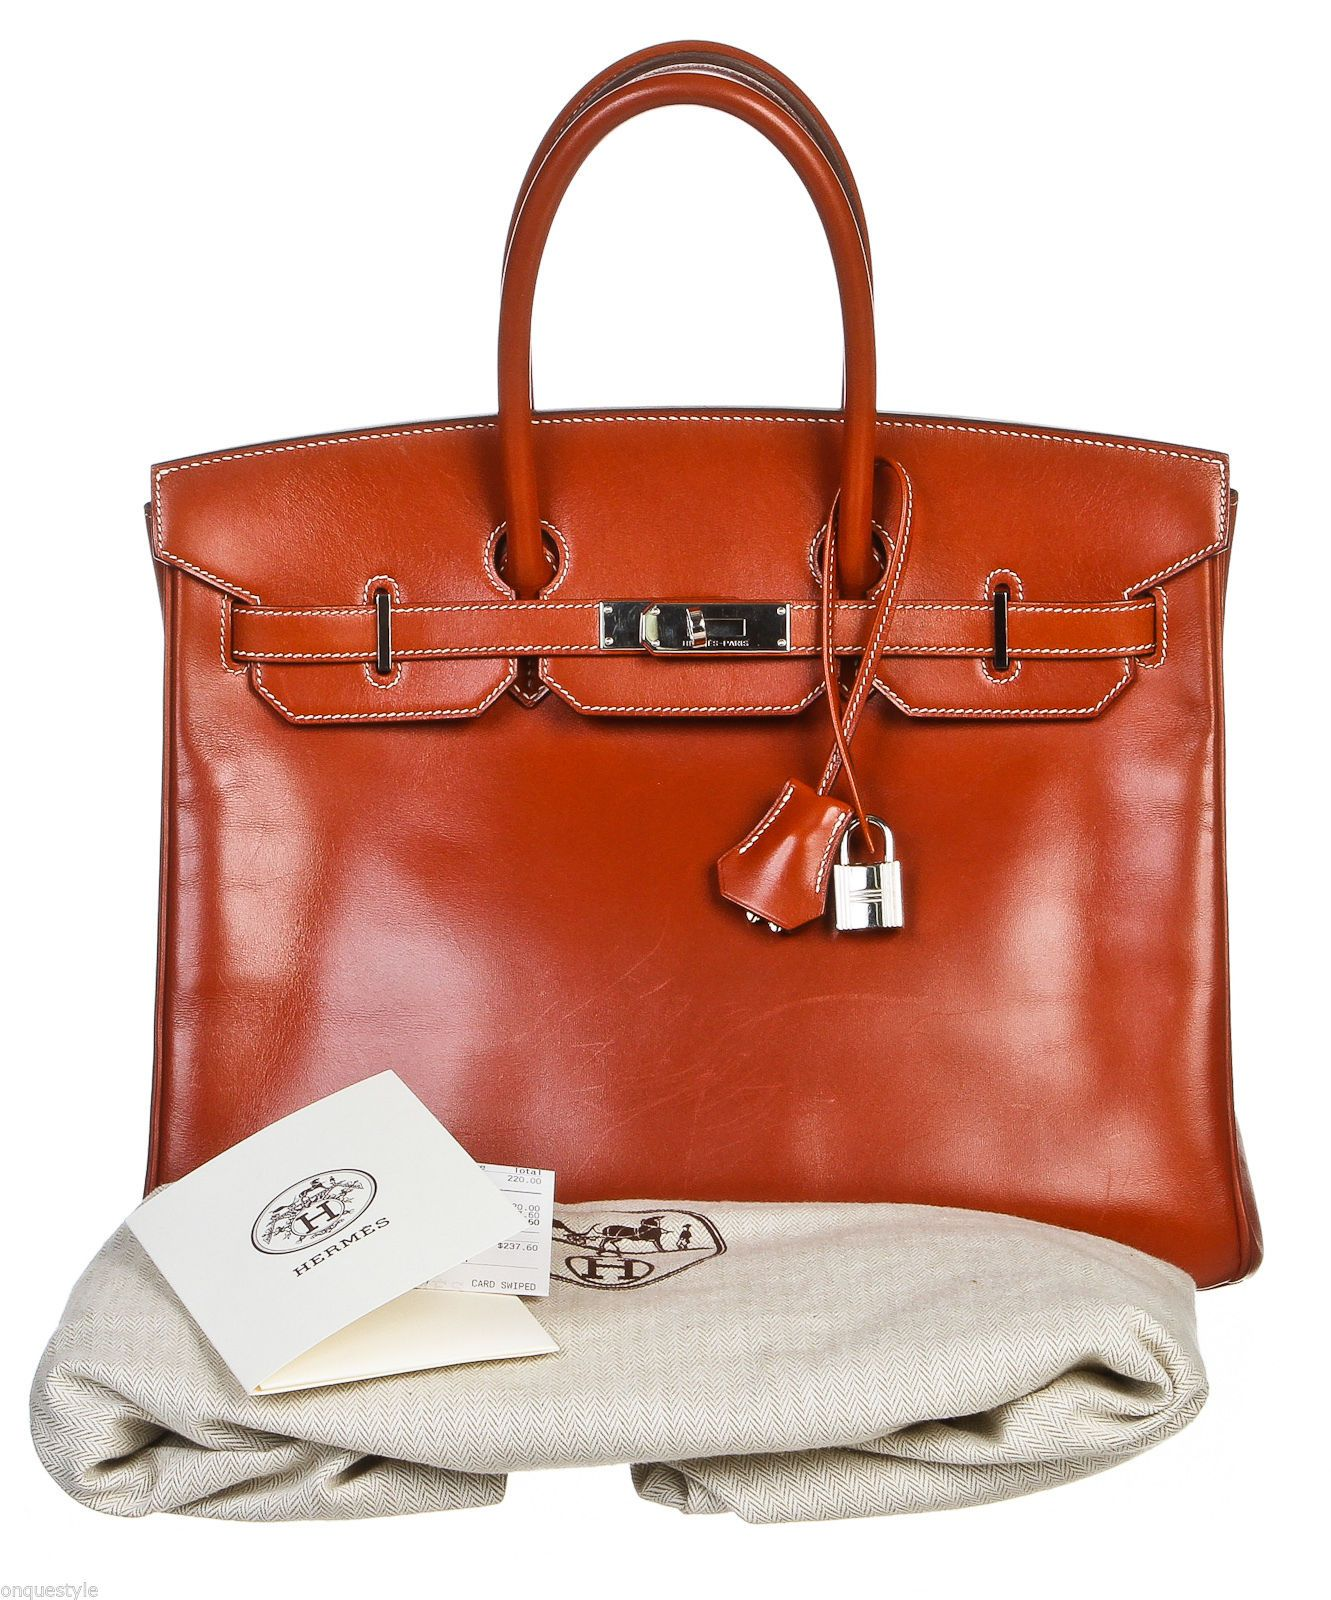 3bff0d26df81c Hermes Brique Box Leather 35cm Birkin Handbag SHW